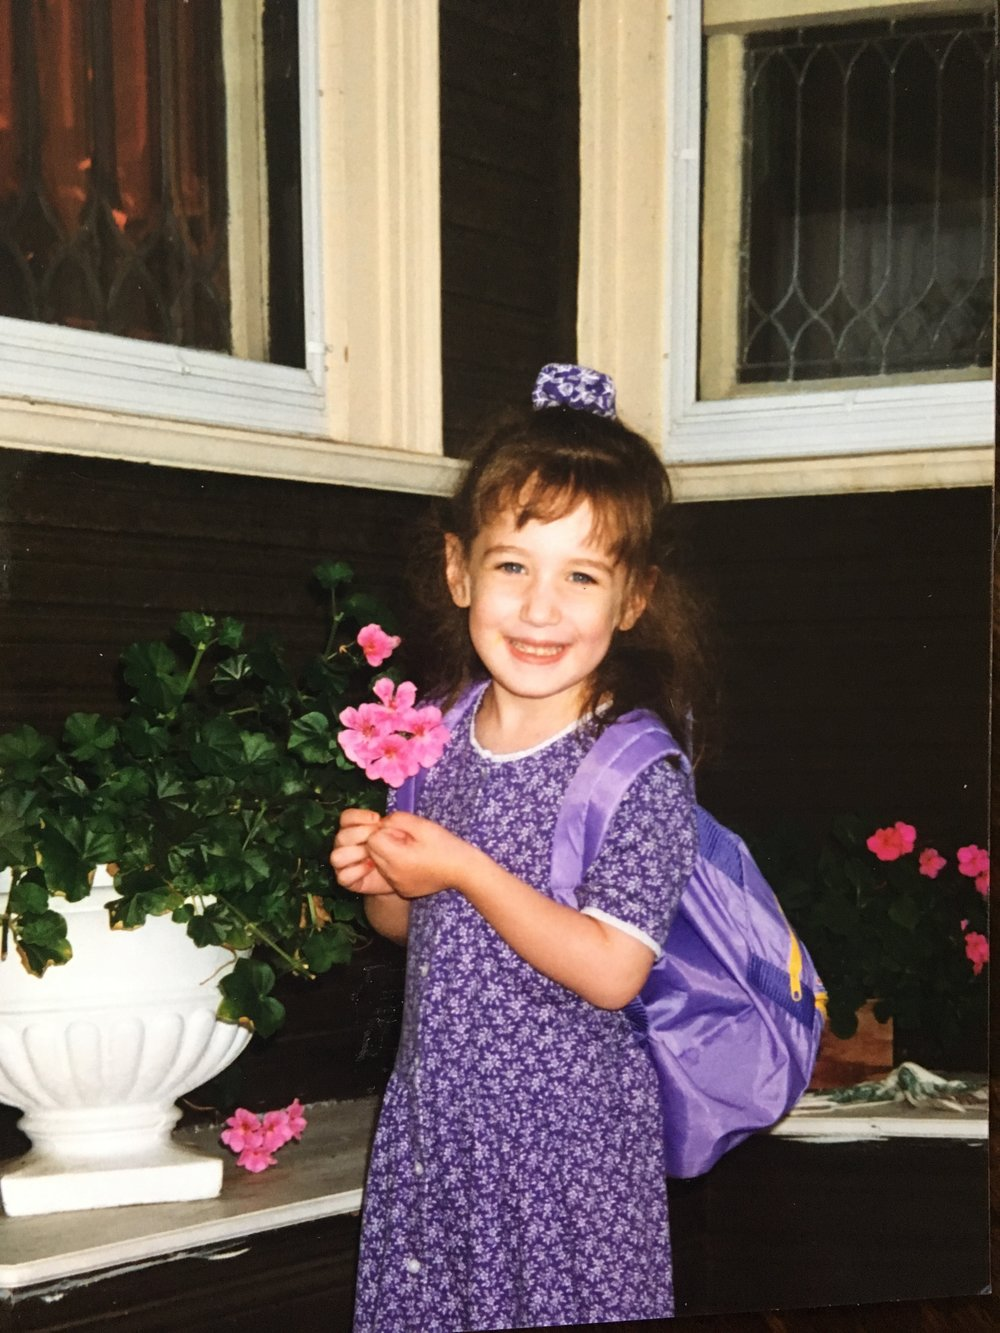 Stephanie kindergarten backpack photo.JPG